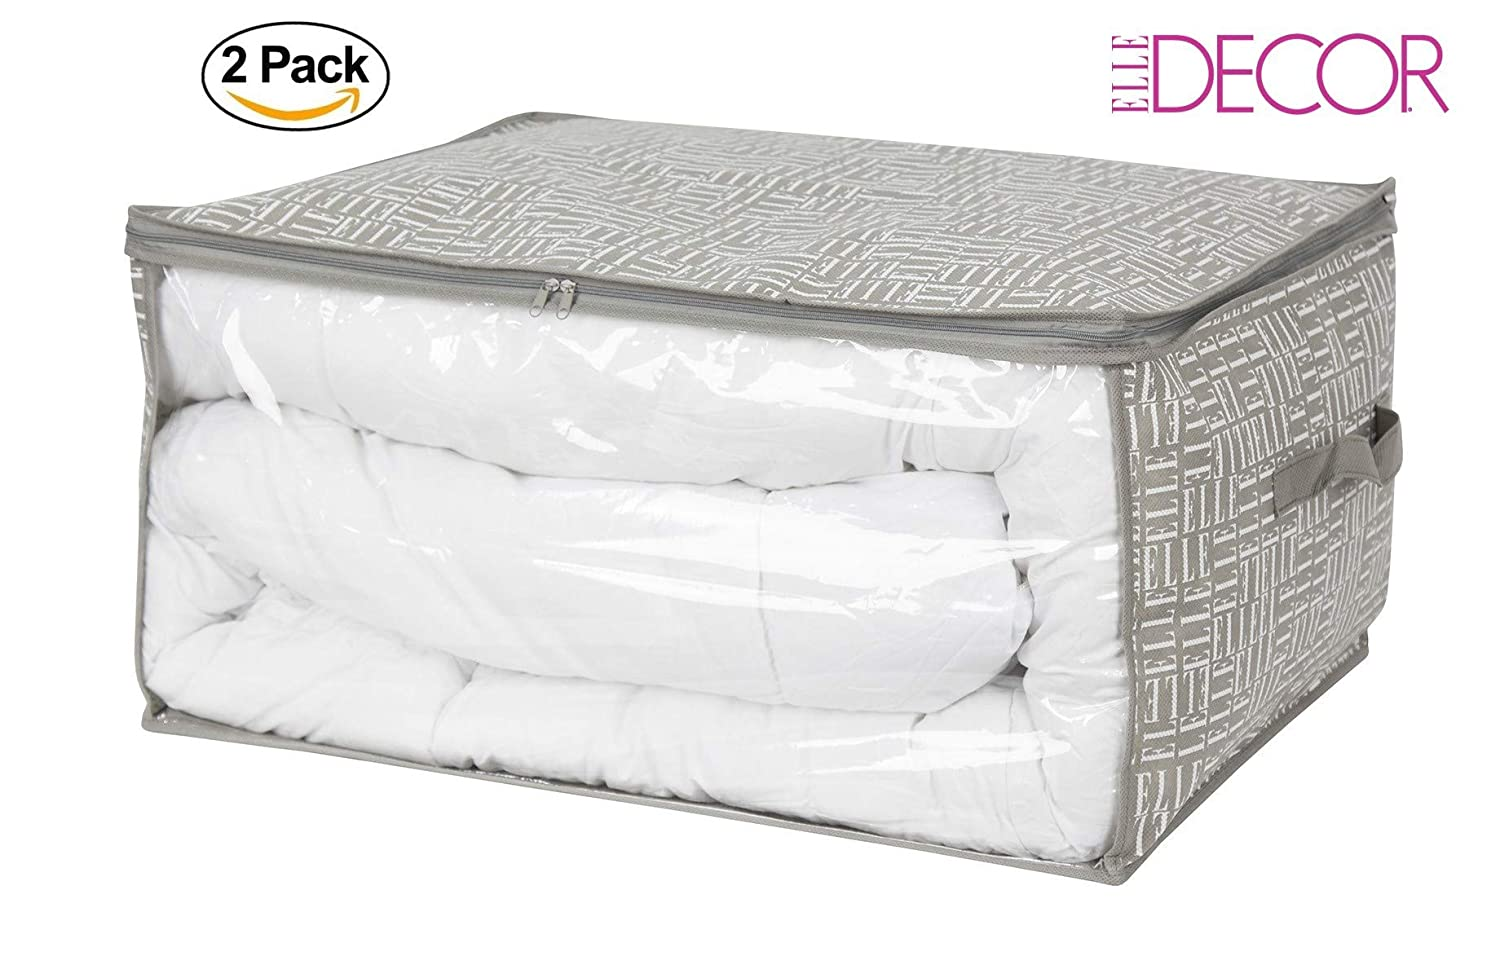 Elle Decor Blanket Storage Bag Closet Under Bed Storage Bag Set of 2 Dependable industries Inc